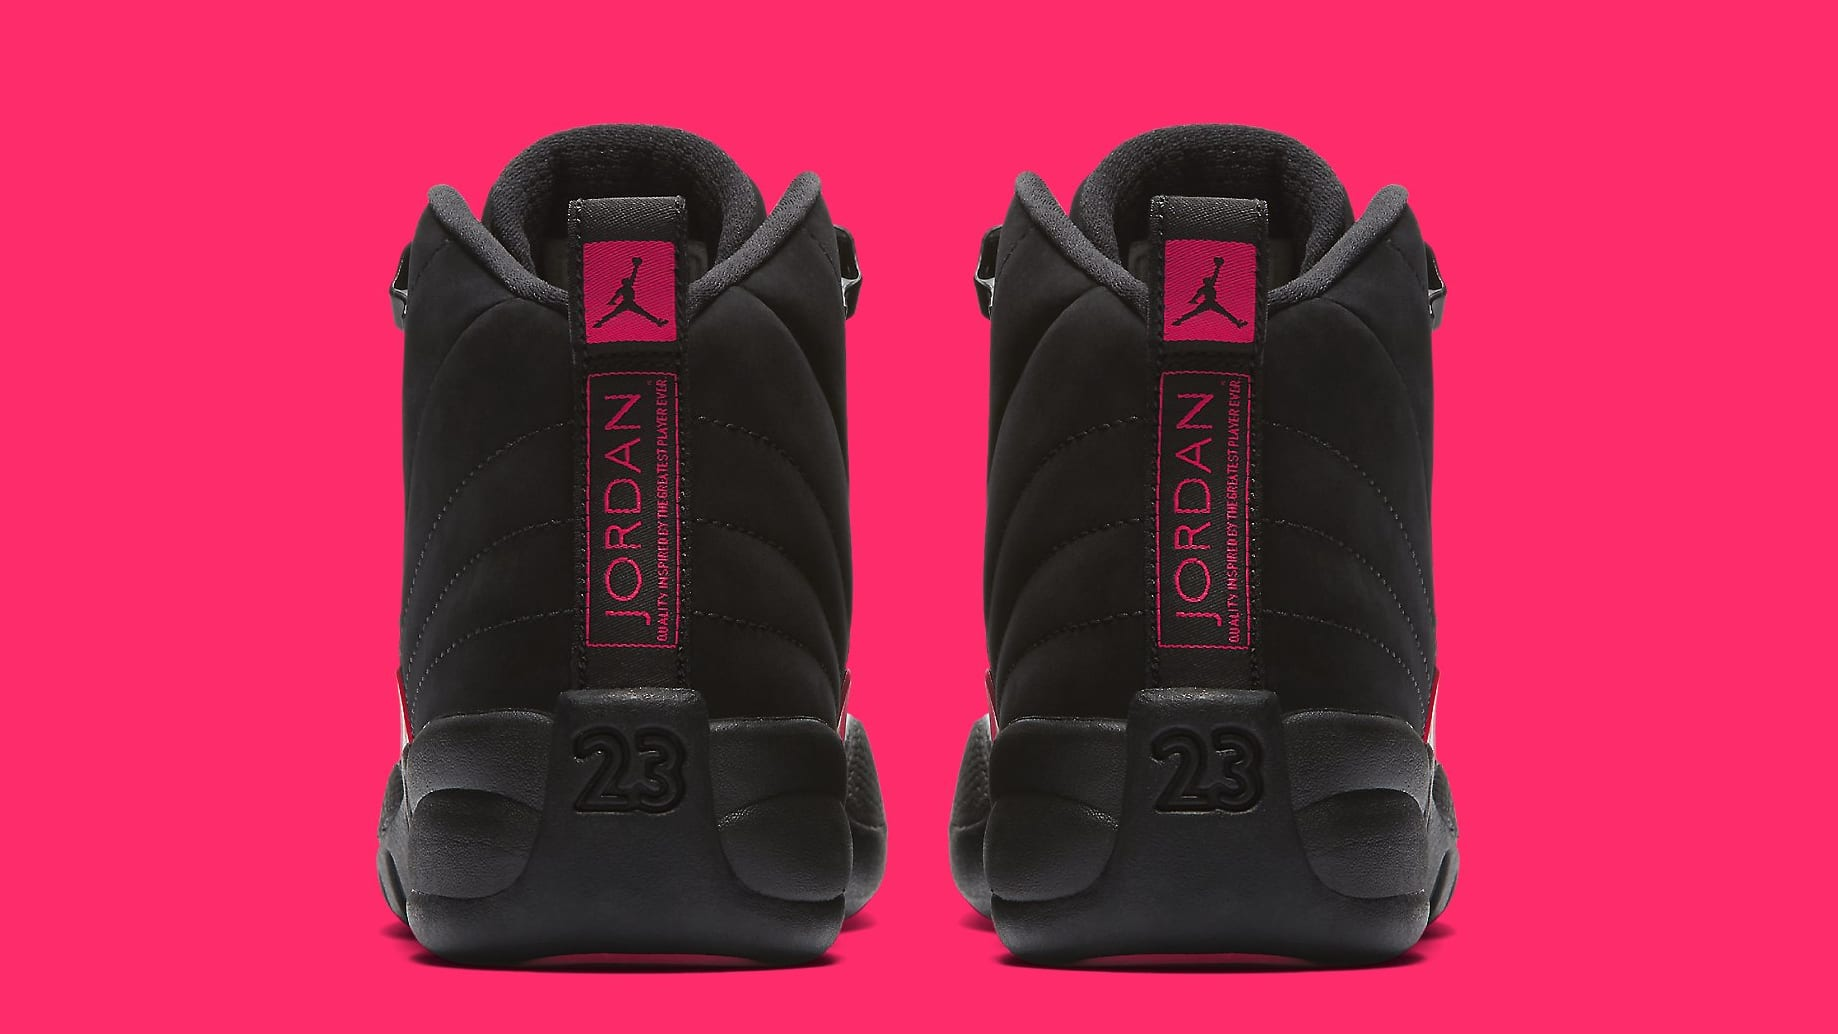 0cfa101cc61 New Black and Pink Air Jordan 12s Dropping Next Week – DJScreamTV.com